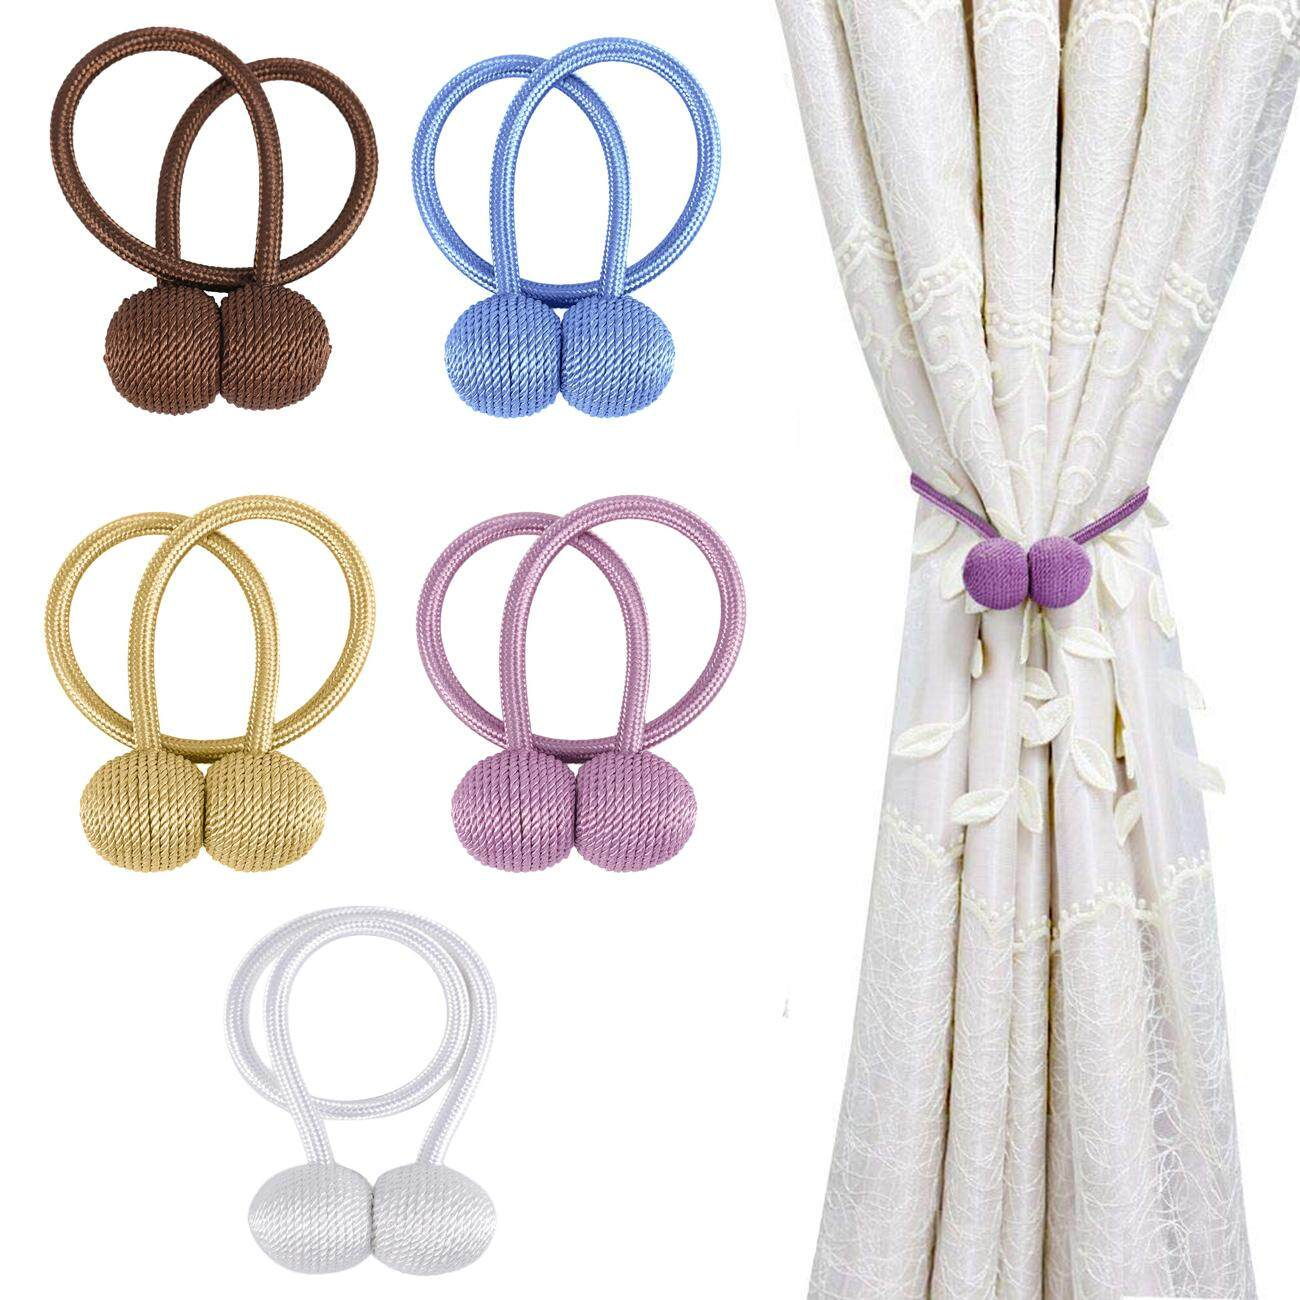 4Pcs Strong Magnetic Curtain Tiebacks Premium Strong Drape Ties Curtain Classic Window Home Office Decorative Drapes Holders for Office School Home